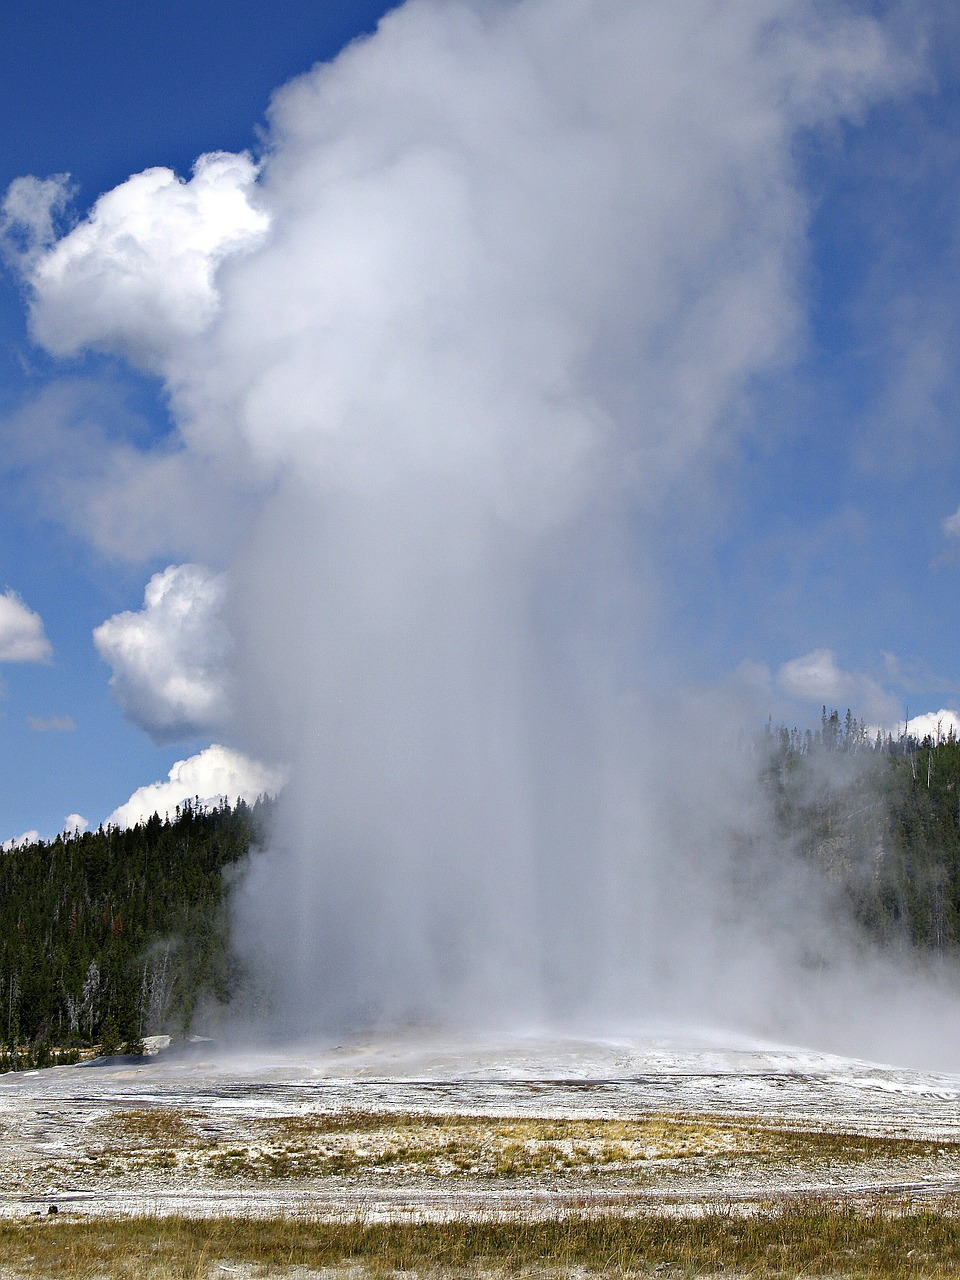 Old faithful,geyser,yellowstone national park,wyoming,usa.